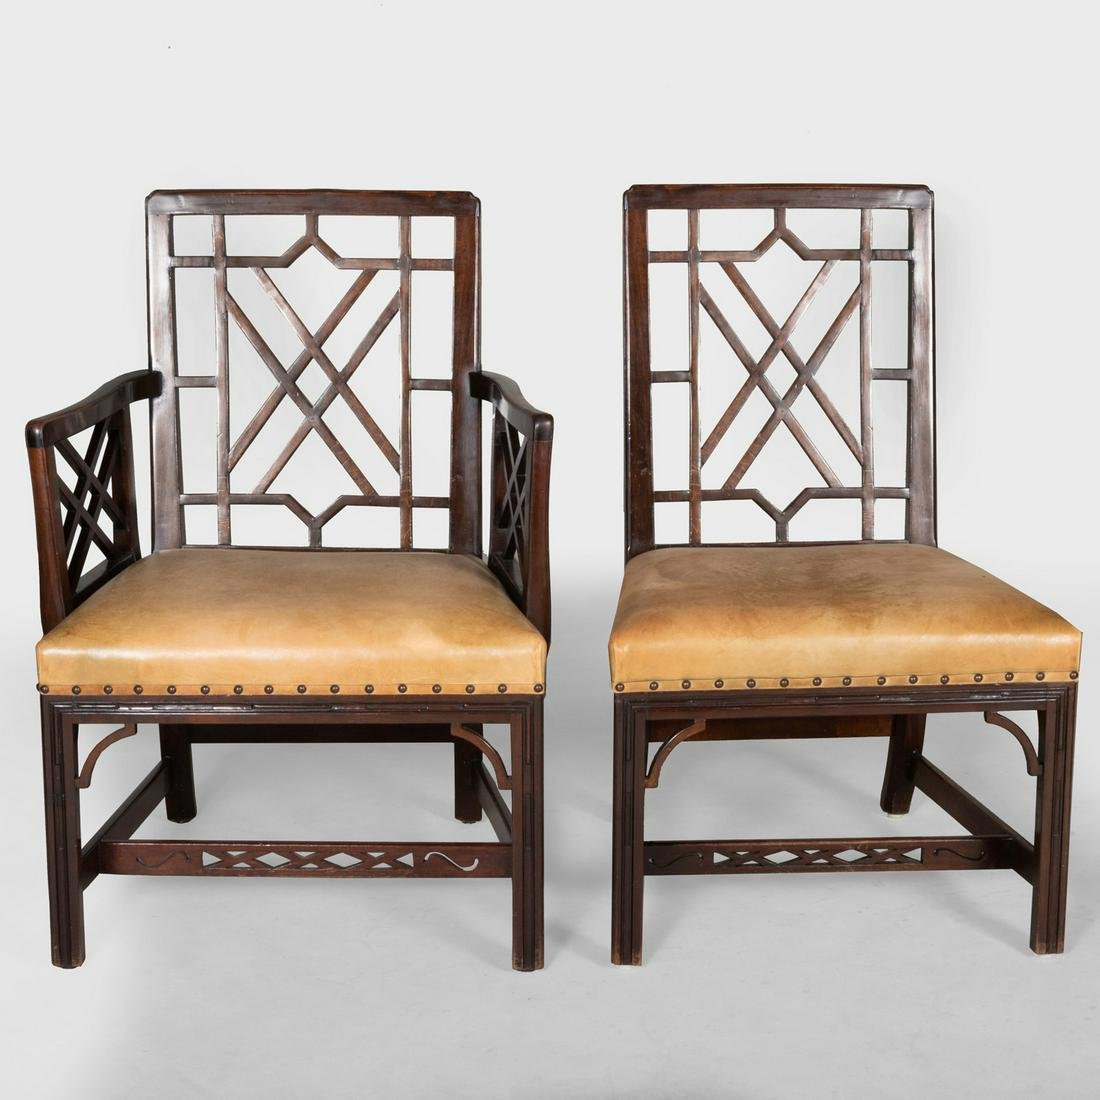 Set of Eight George III Style Mahogany and Leather